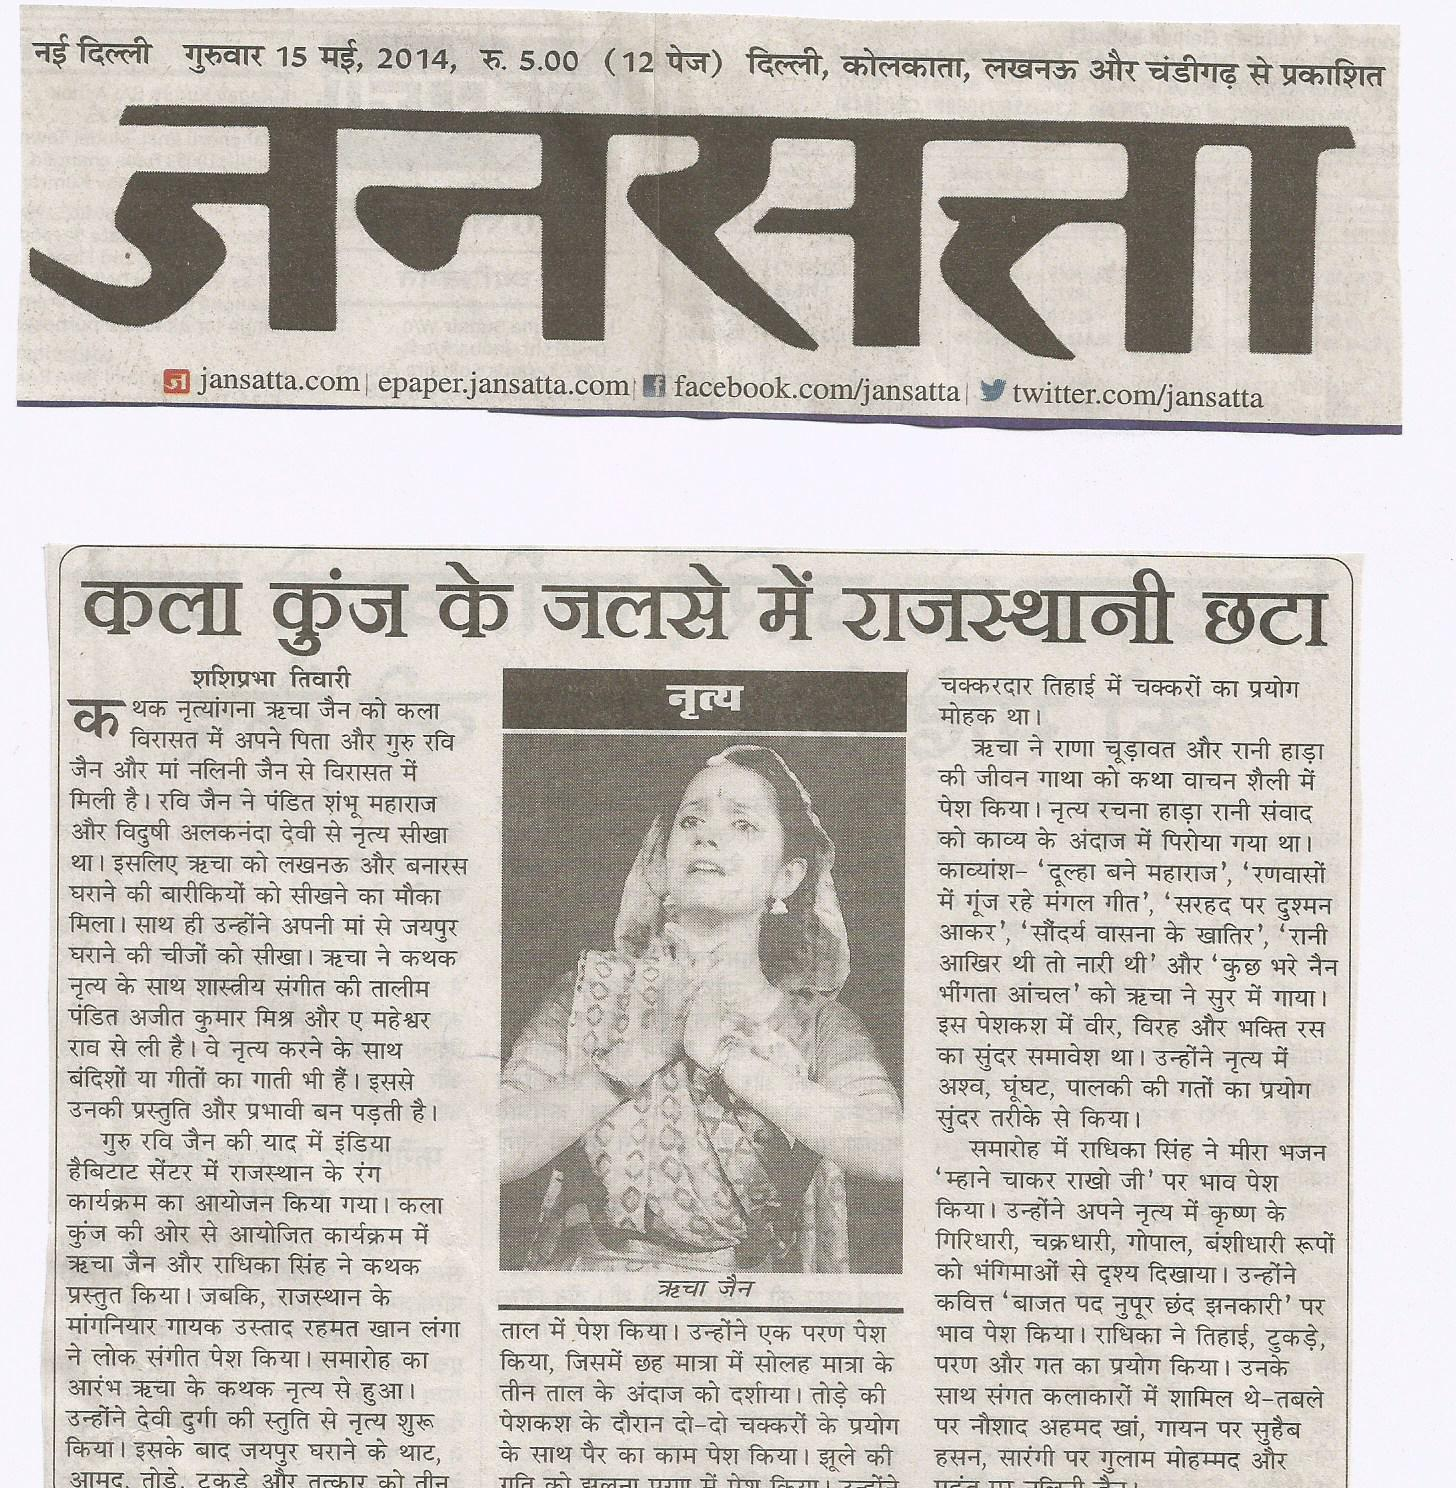 Jansatta by Critic Shashi Prabha Tiwari Ji, 15th May, 2014